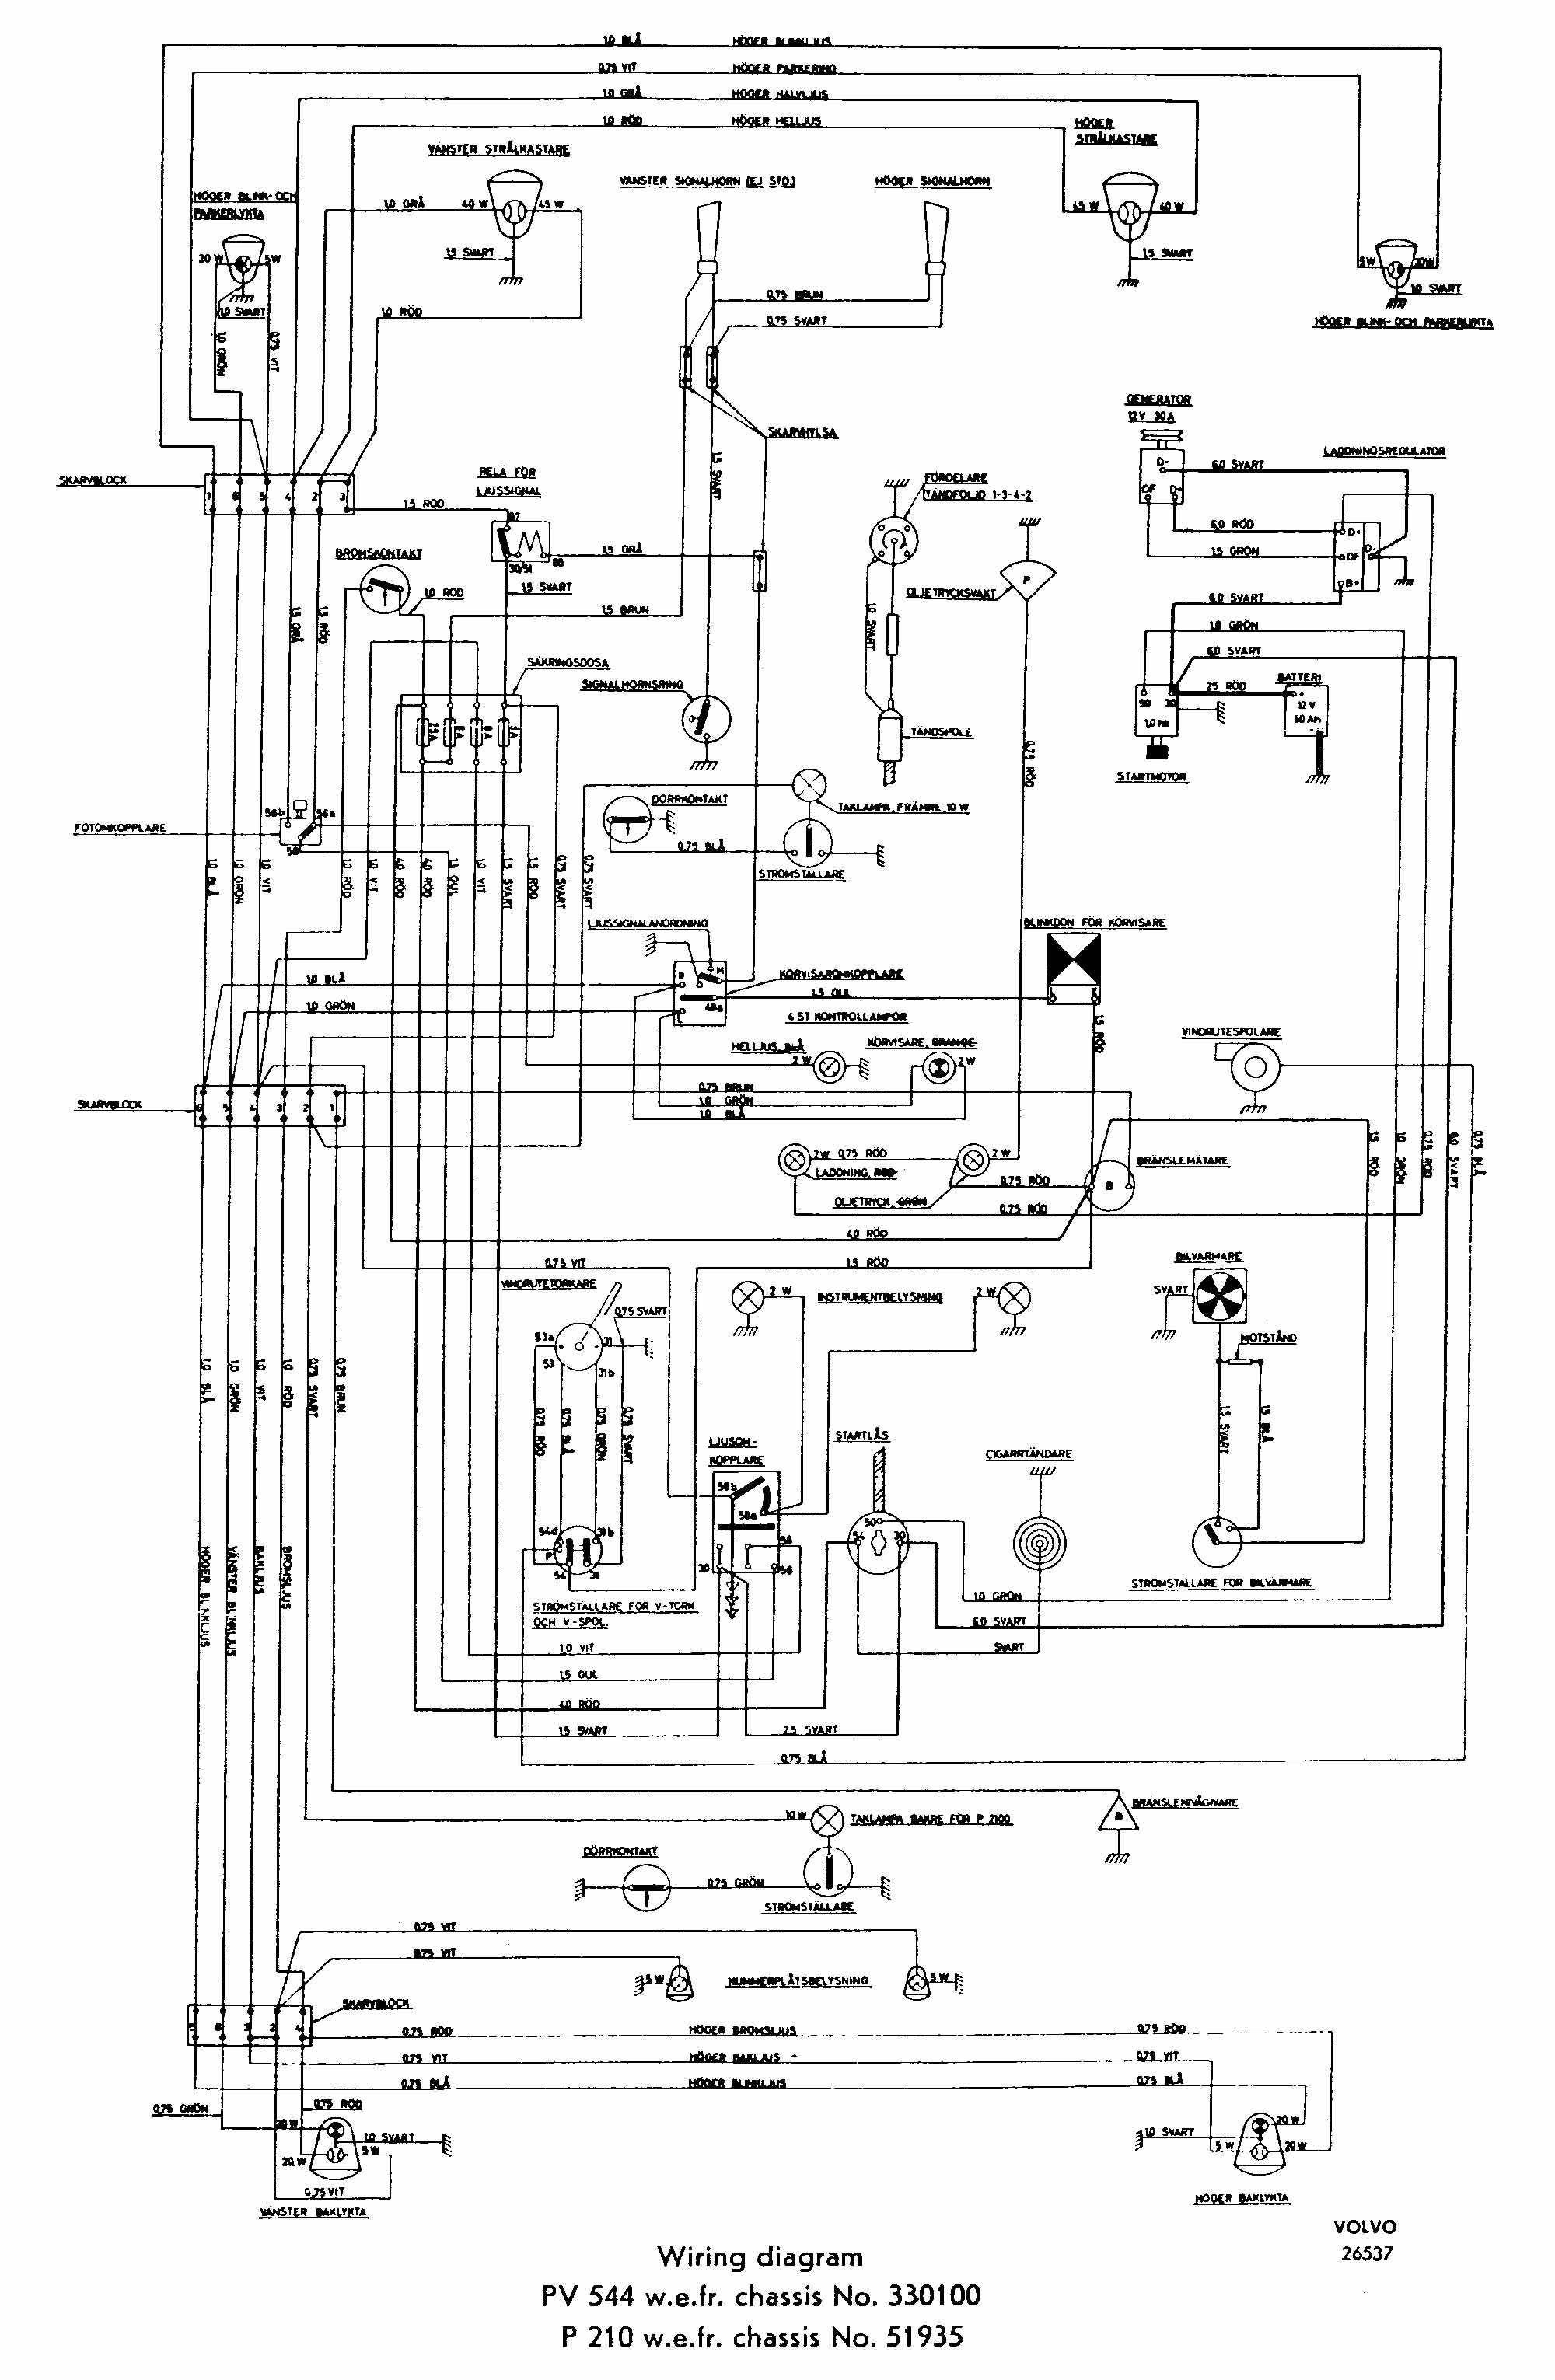 s40 wiring diagram s40 printable wiring diagram database 2001 volvo s40 wiring diagram 2001 auto wiring diagram schematic source